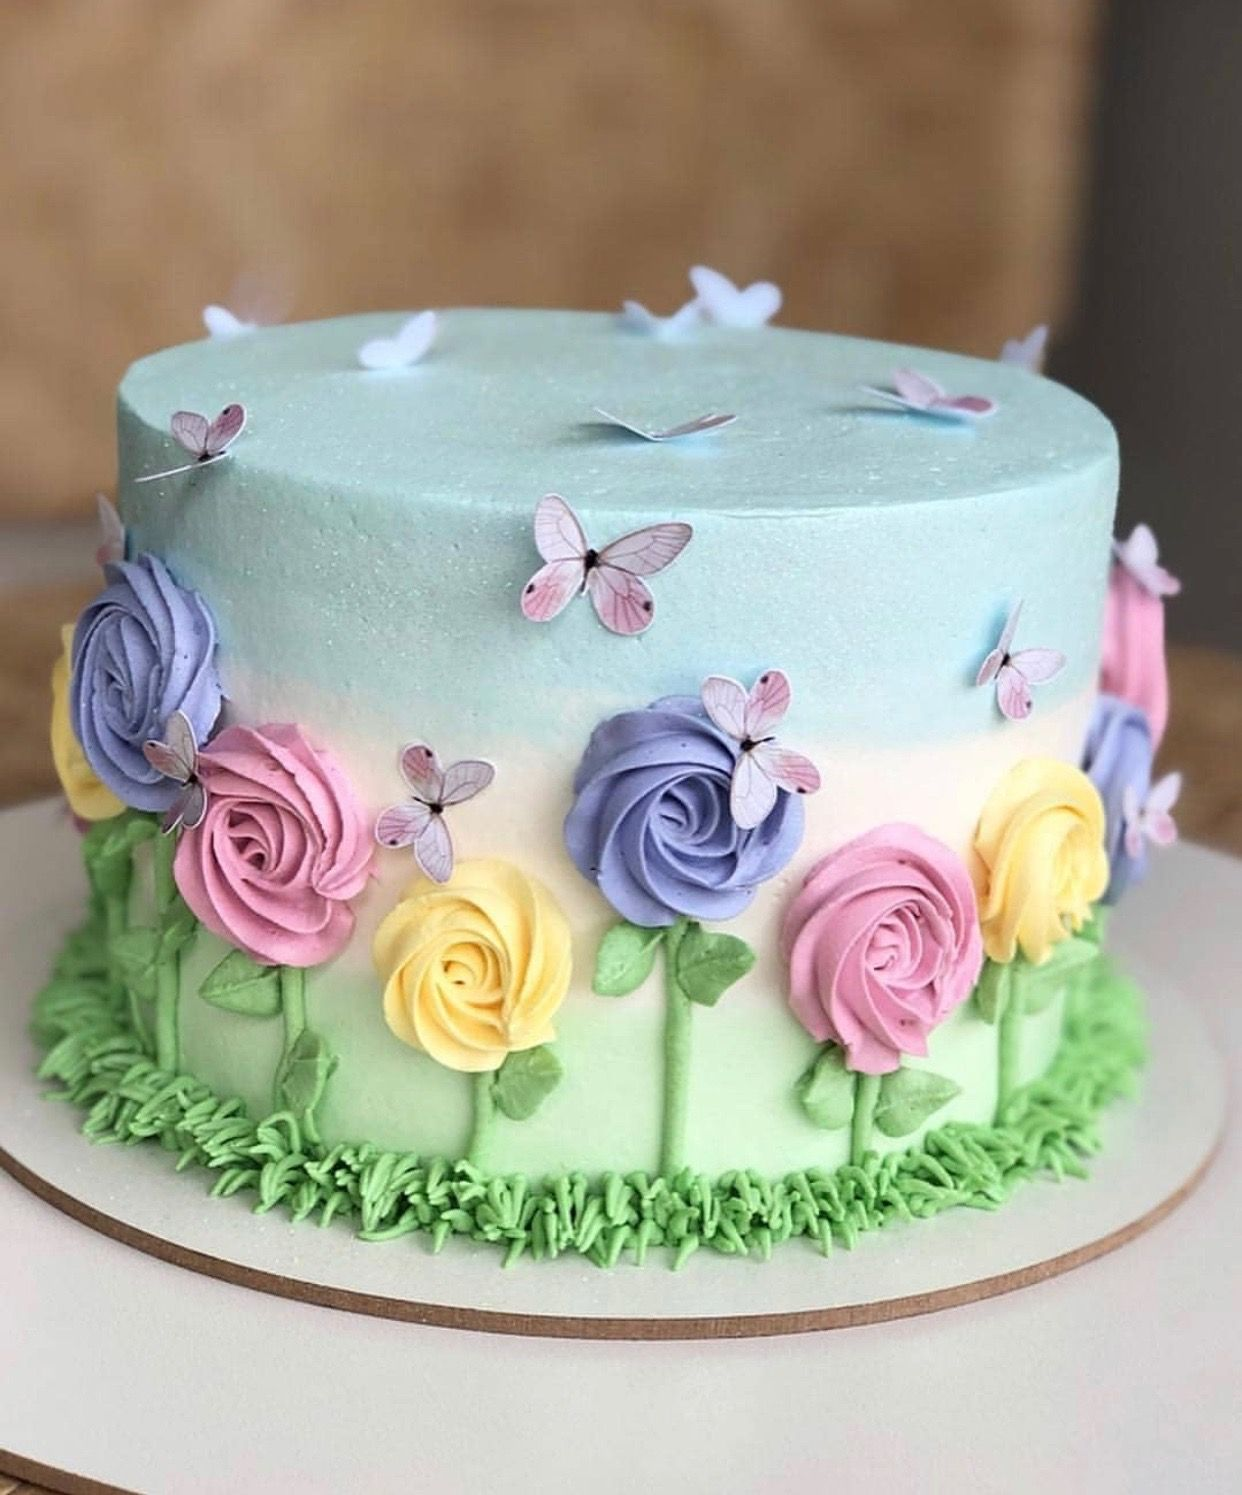 Anytime Spring Cake Cake Decorating Designs Spring Cake Cake